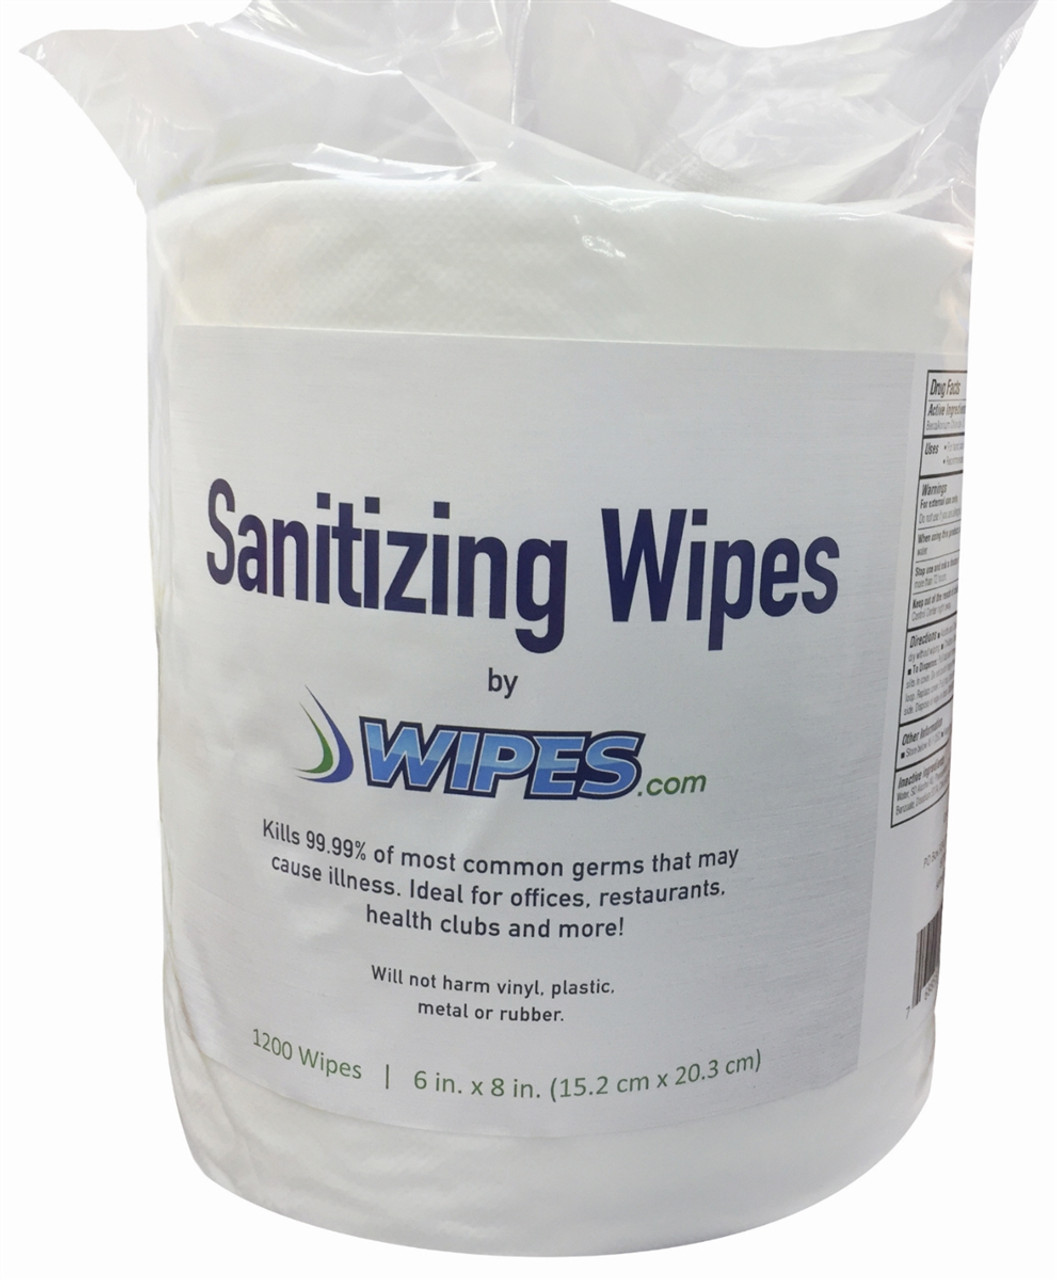 Wipes.com Hand Sanitizing Wipes - 1200 Count/4 Rolls